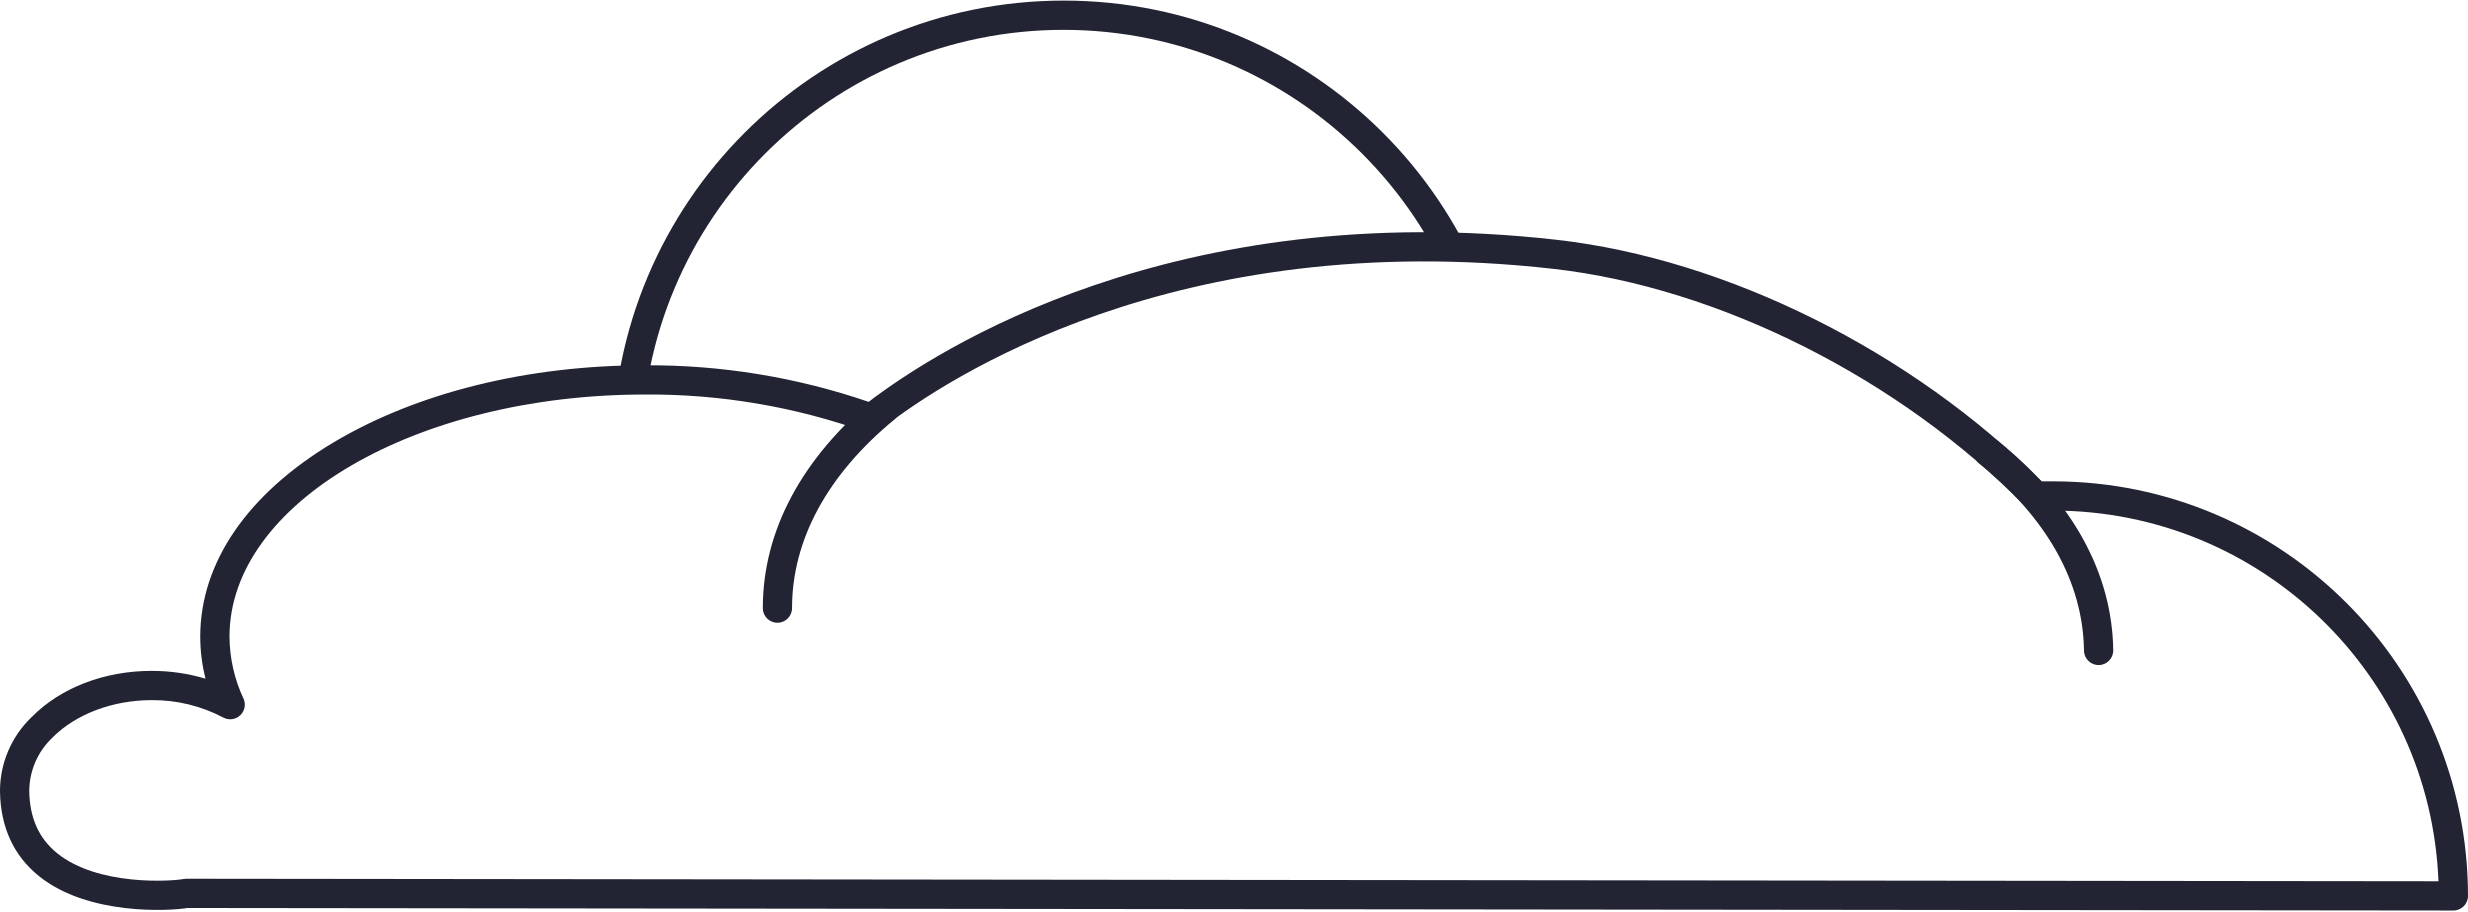 pile of snow Clipart illustration in PNG, SVG